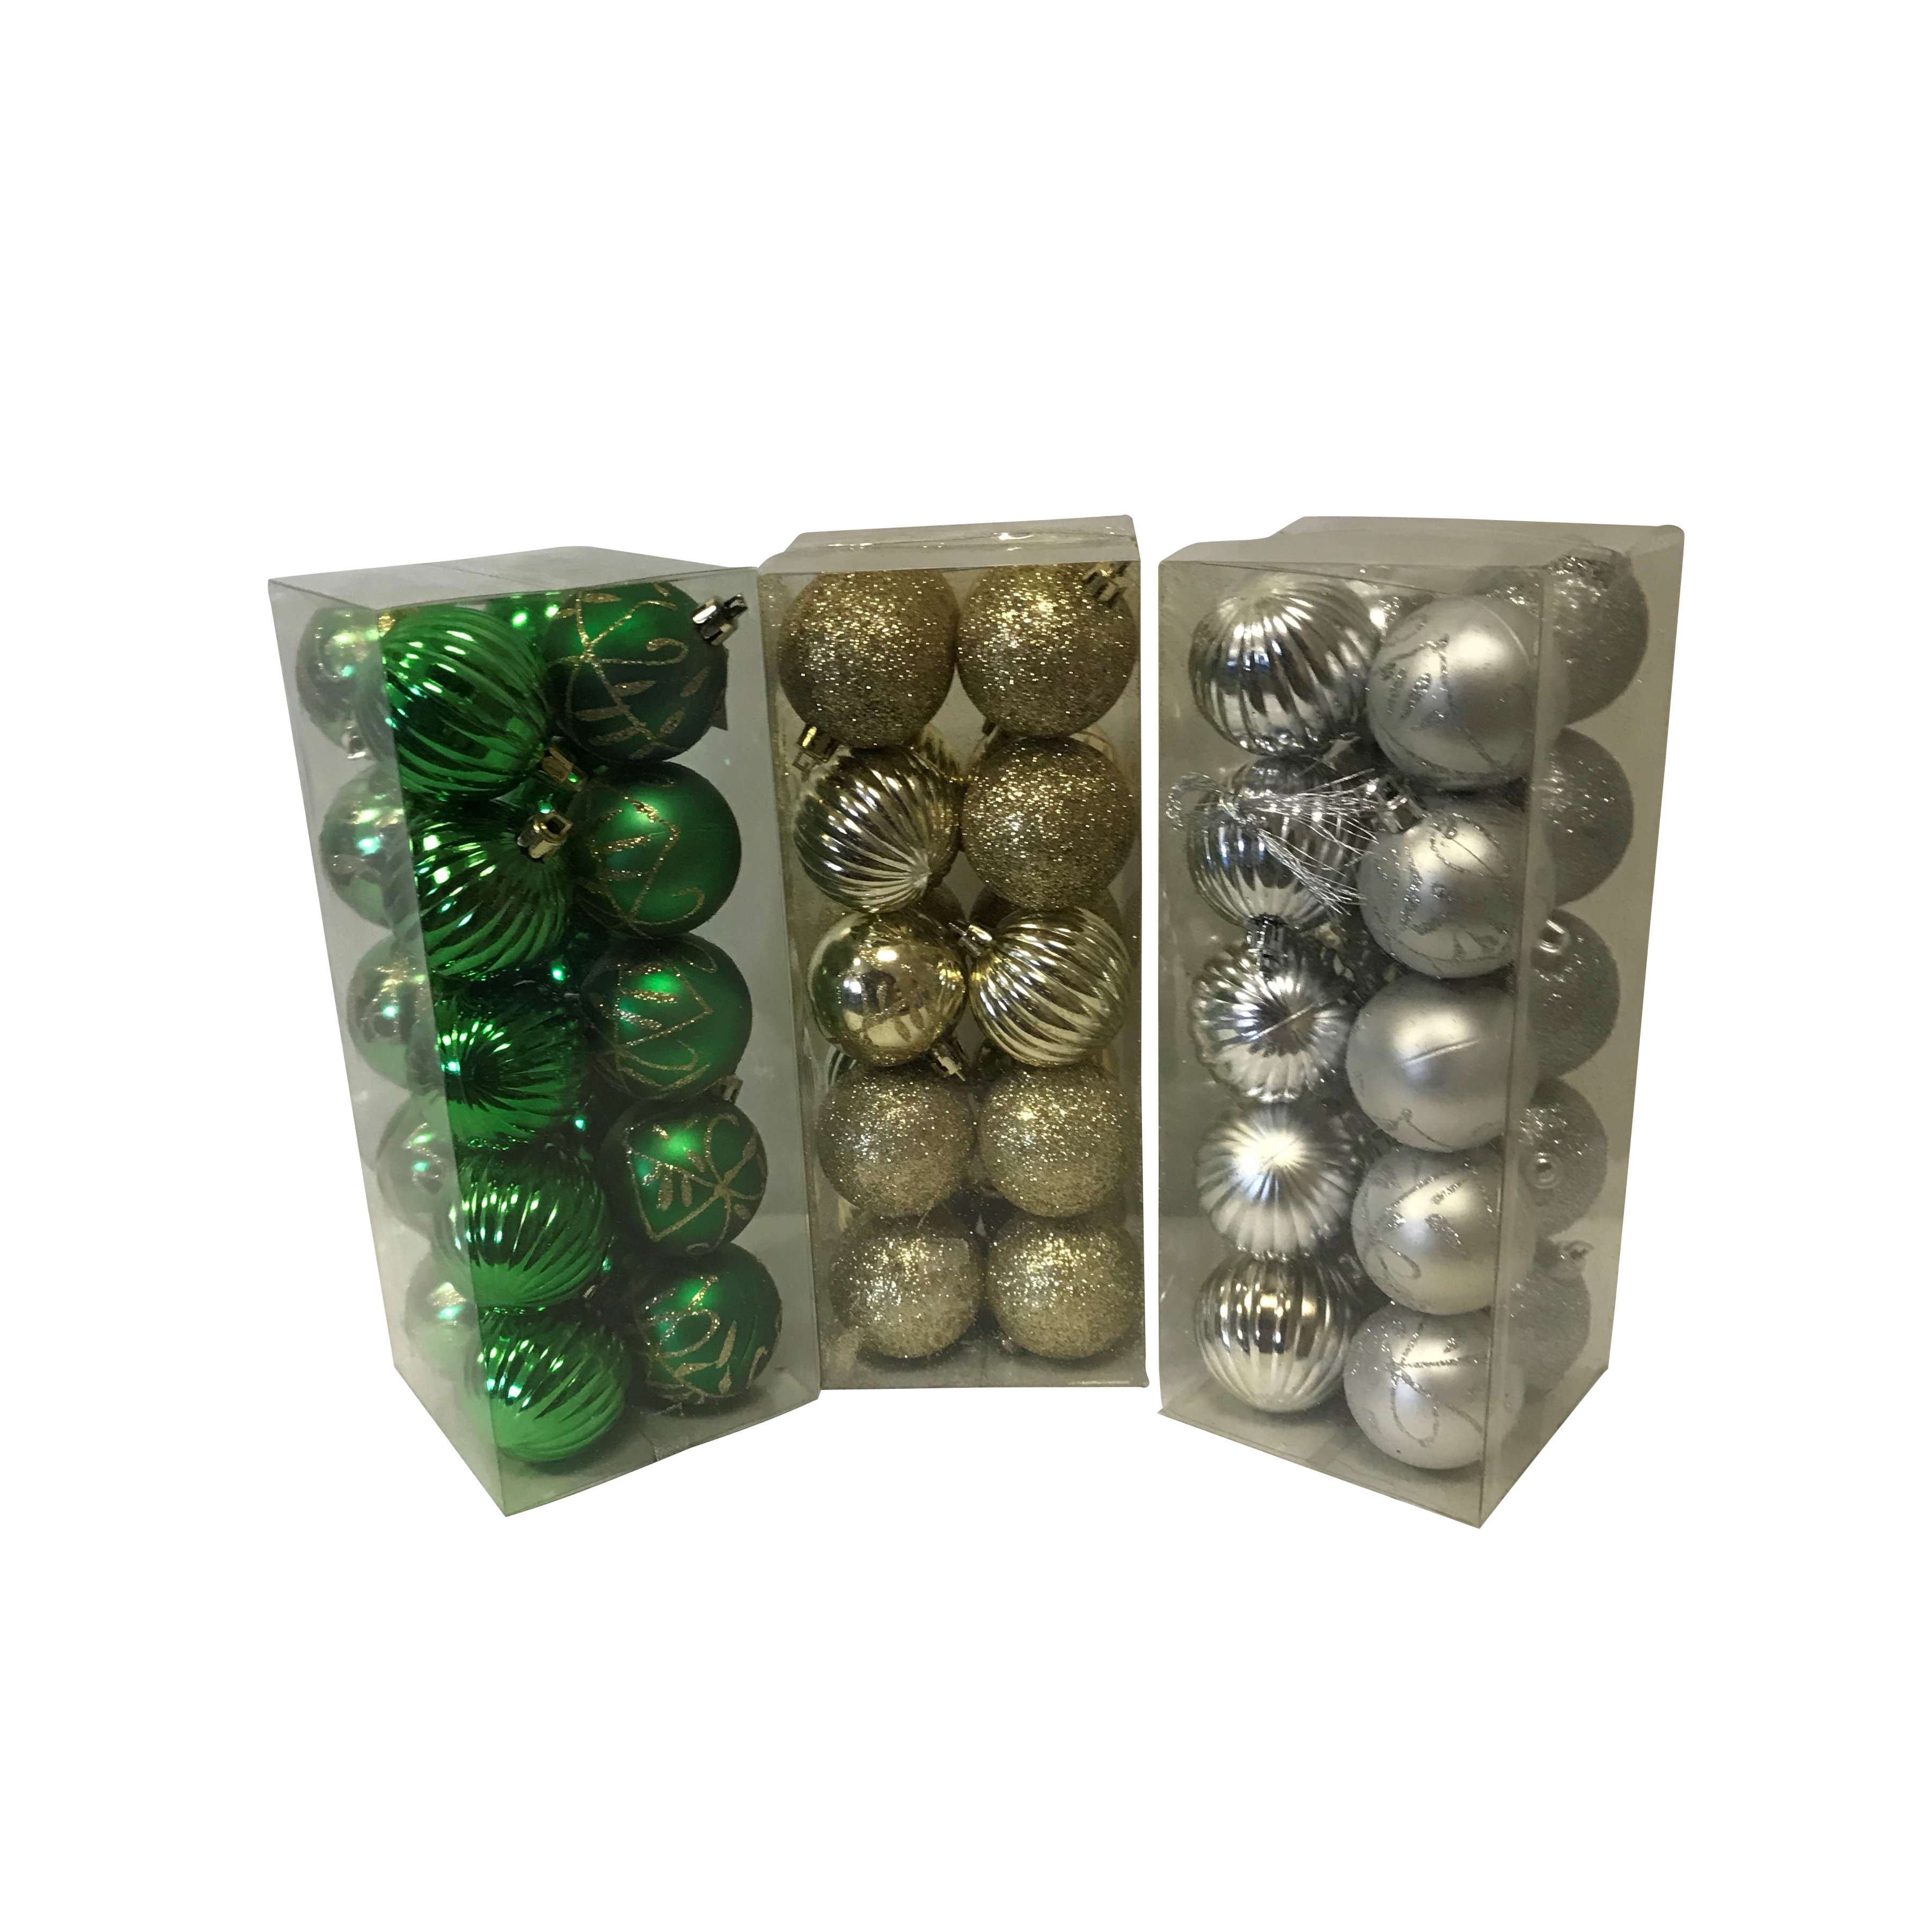 Picture of Santas Forest 99913 Shatterproof Decorated Ball Ornament, 50 mm H, Christmas Ornaments, PVC, 20, Acetate Box